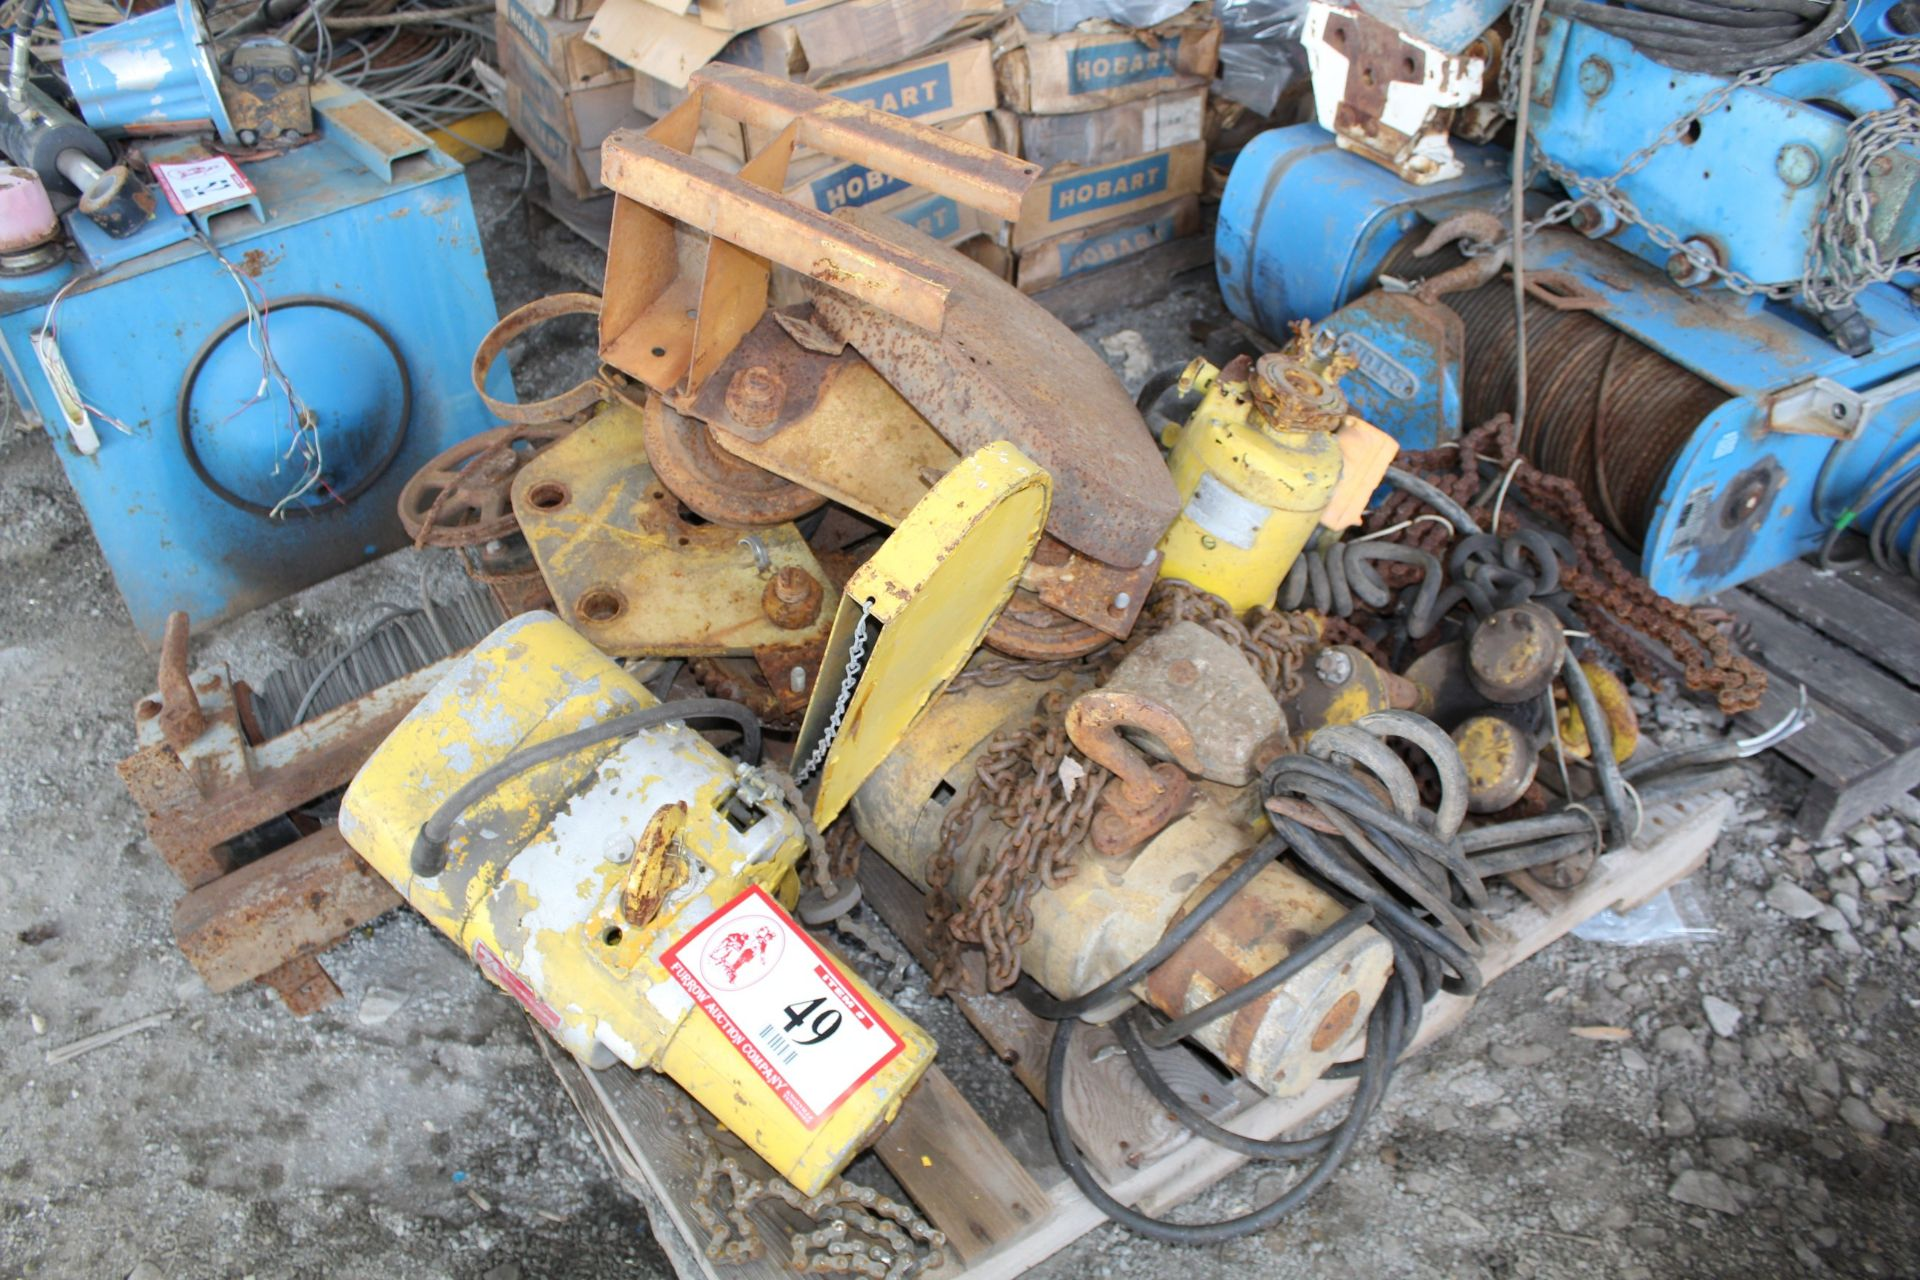 Lot 49 - Contents of Pallet (5) Electric Hoists, Hoists Parts & Accessories